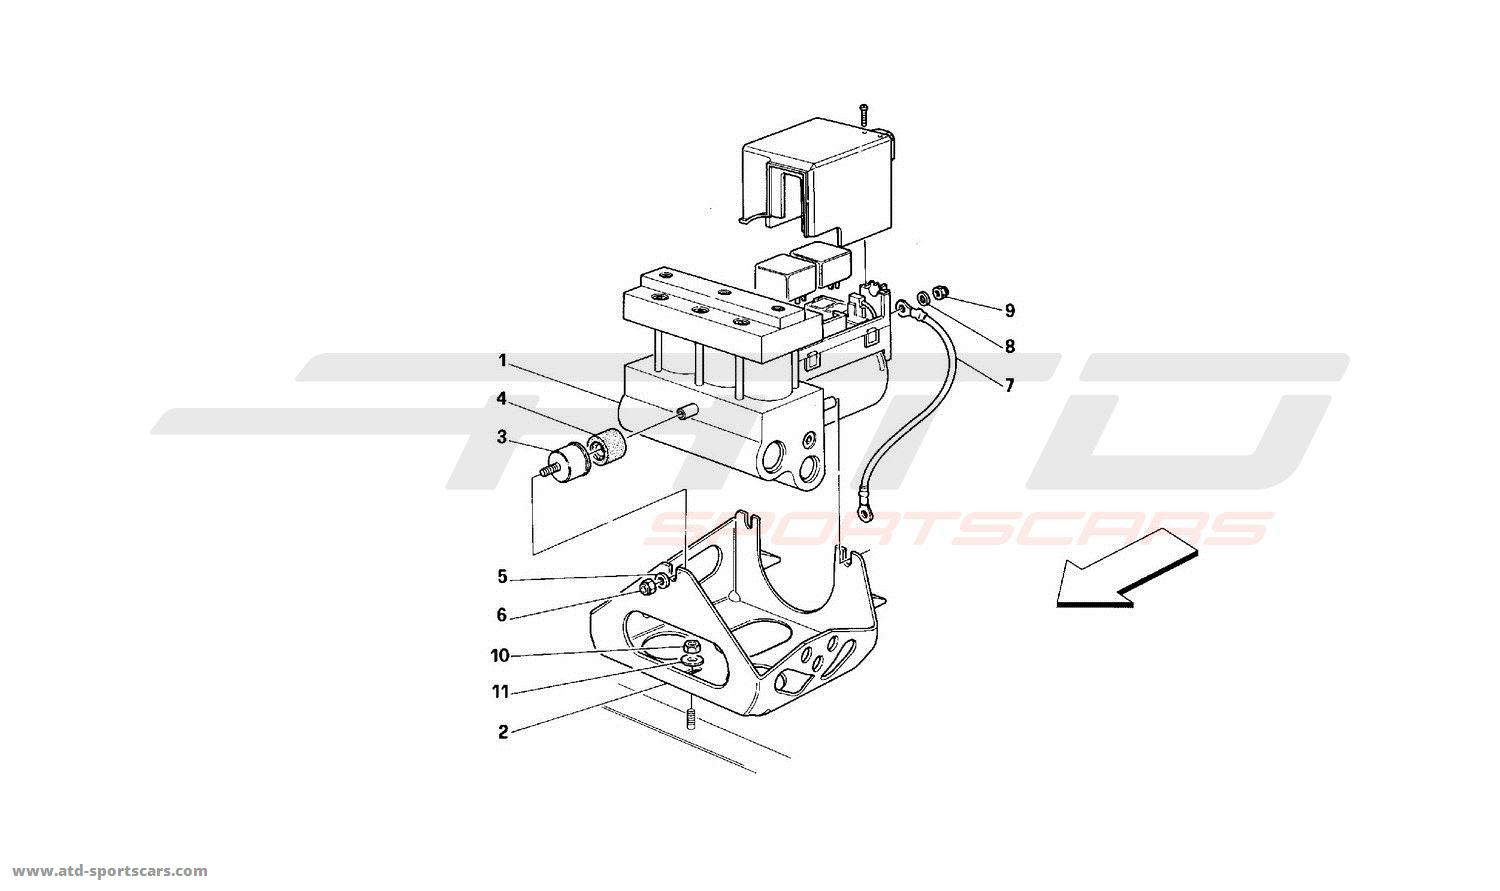 Hydraulic Control Unit Diagram Valve Ferrari 512 Tr For Wiring Abs Parts At Atd Sportscars Flow